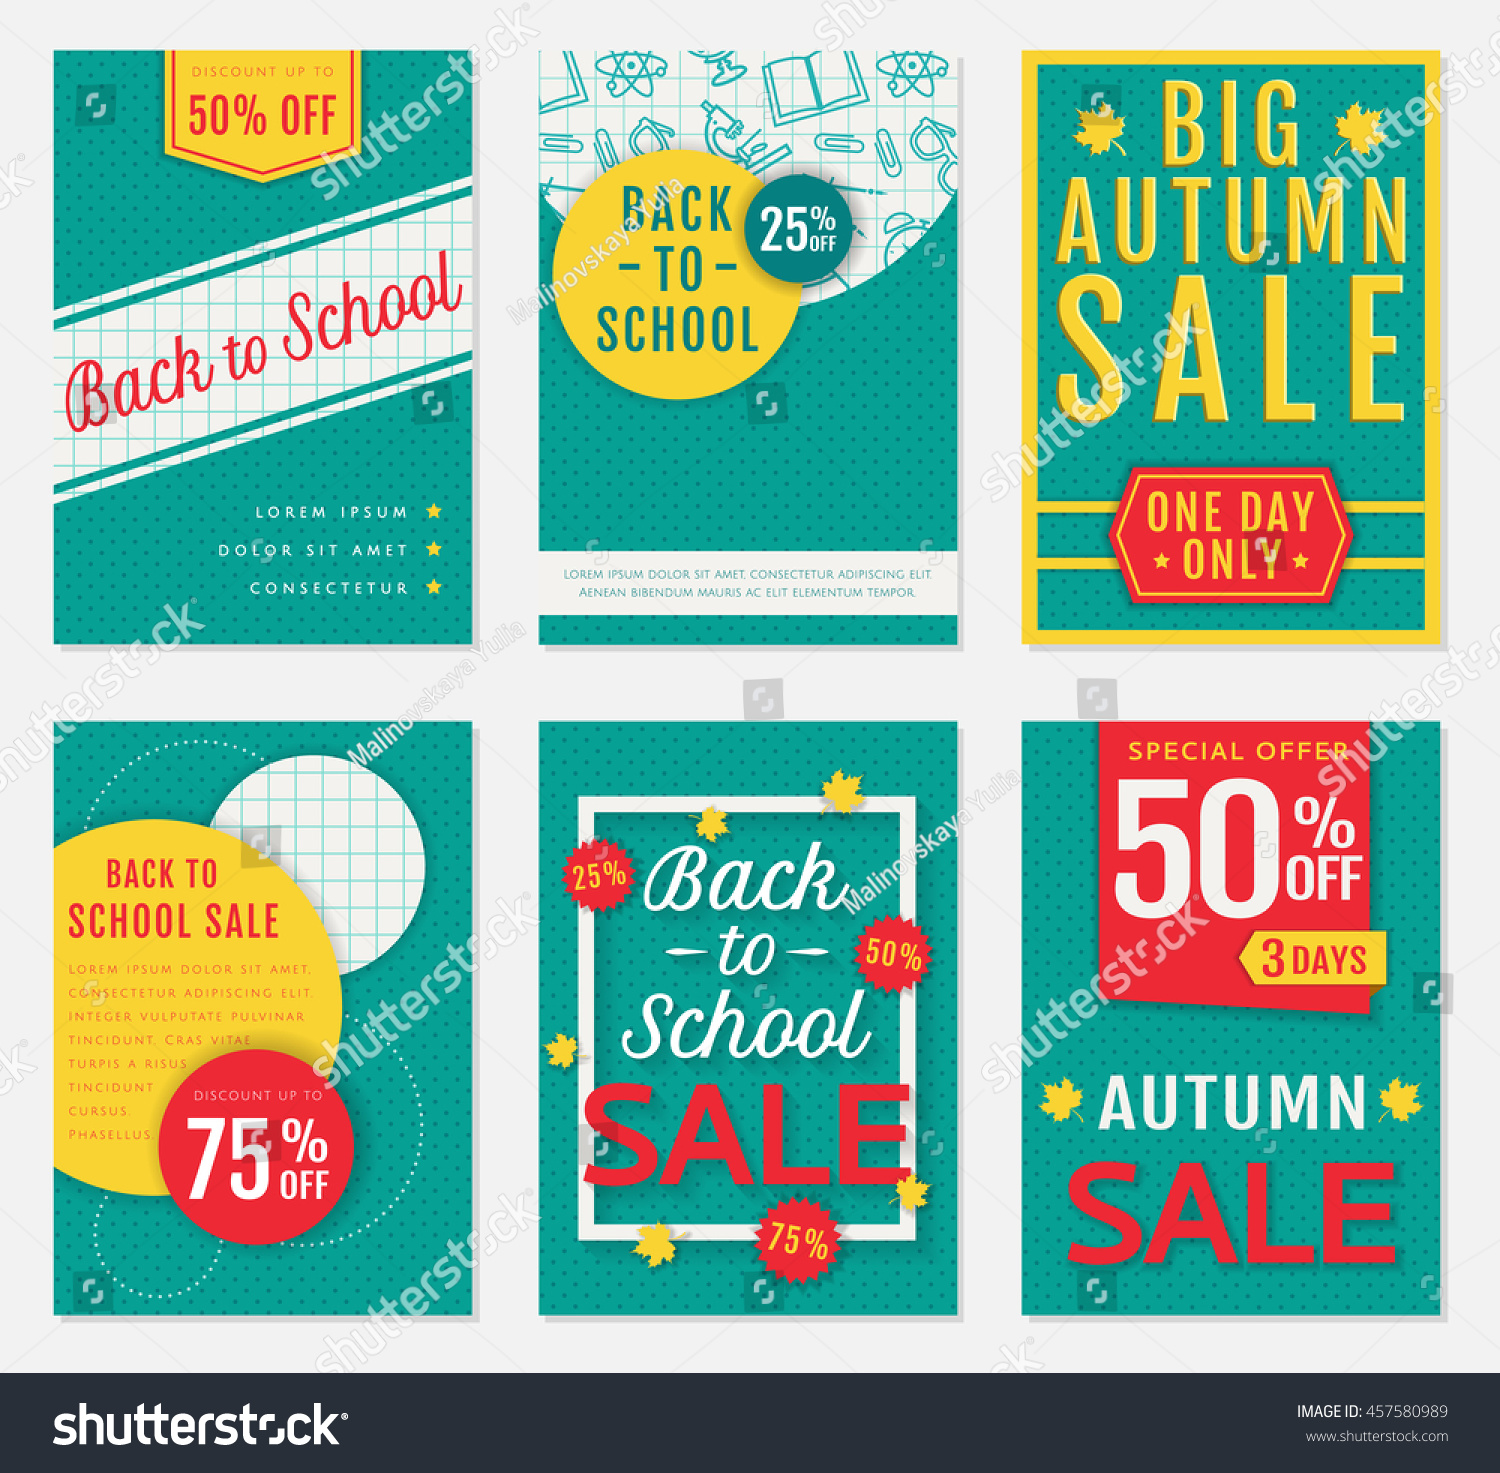 back school autumn discount banners templates stock vector back to school and autumn discount banners templates of advertising flyers for the seasonal s